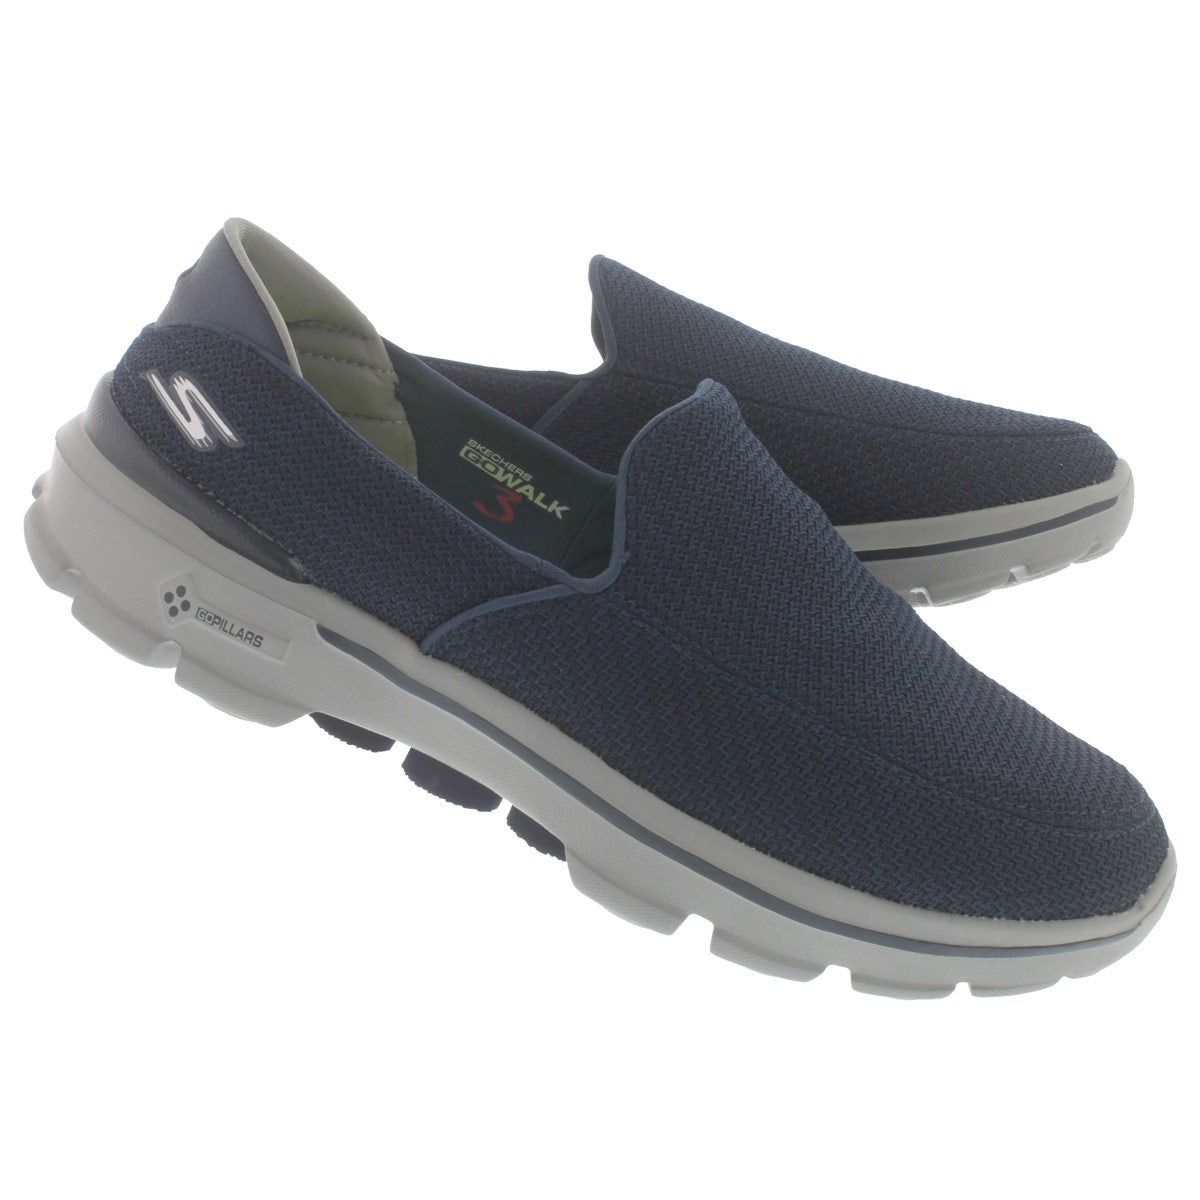 Mns GOwalk 3 navy/gry slip on shoe